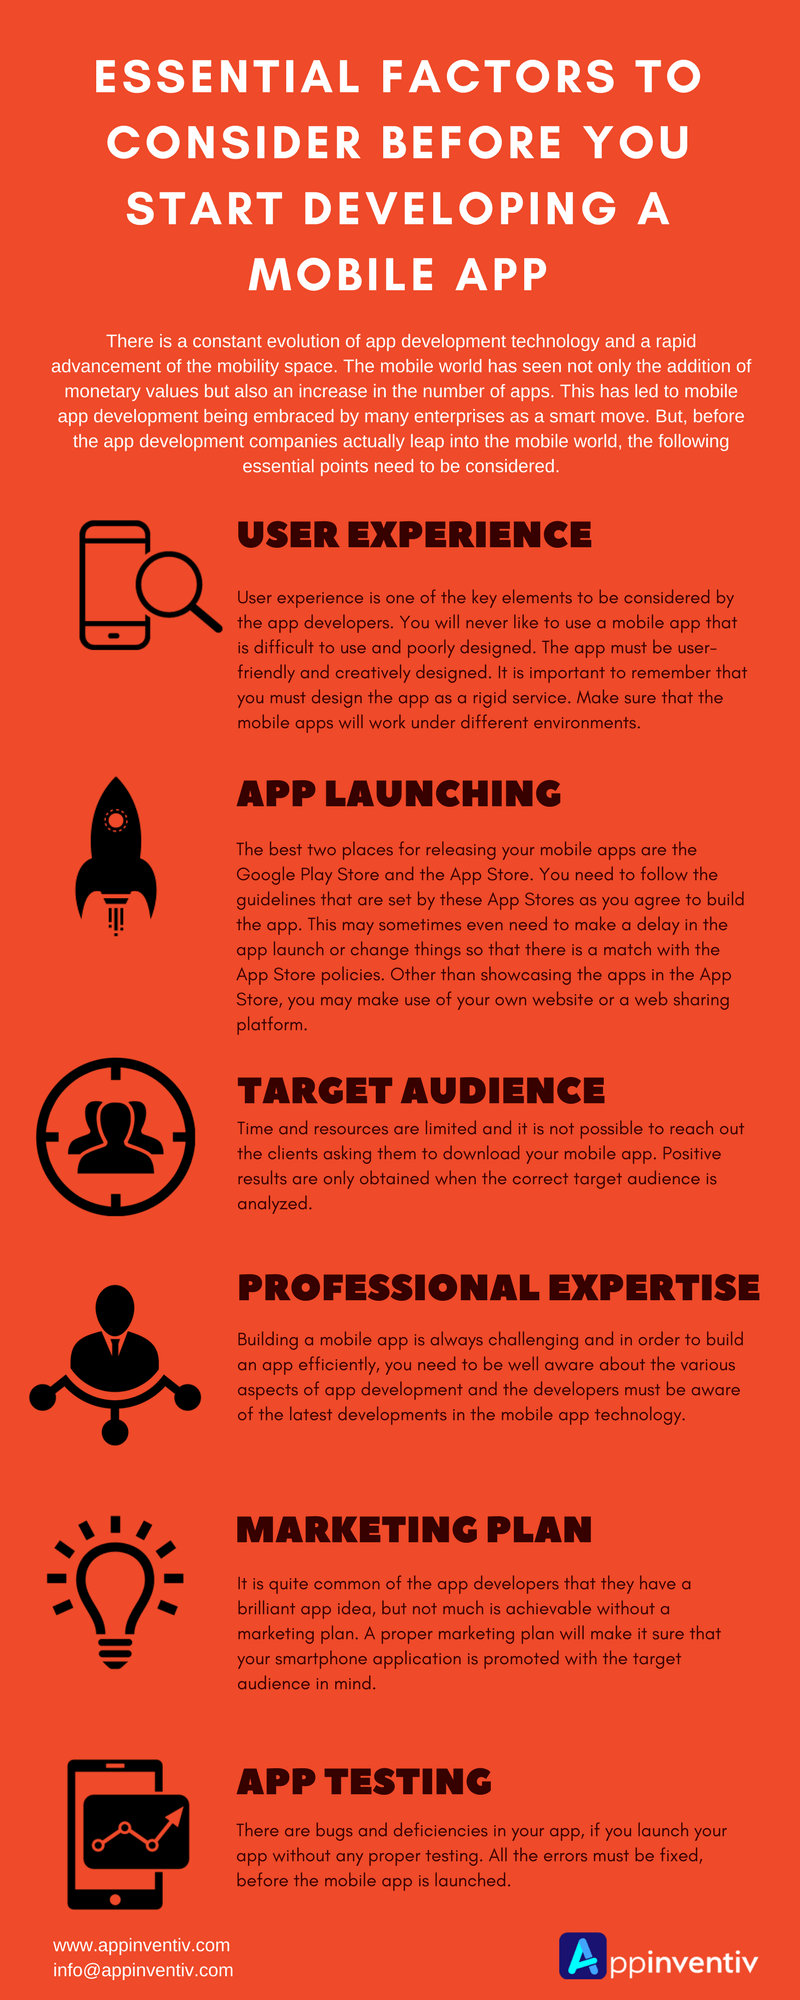 Developing a Mobile App (Infographic)